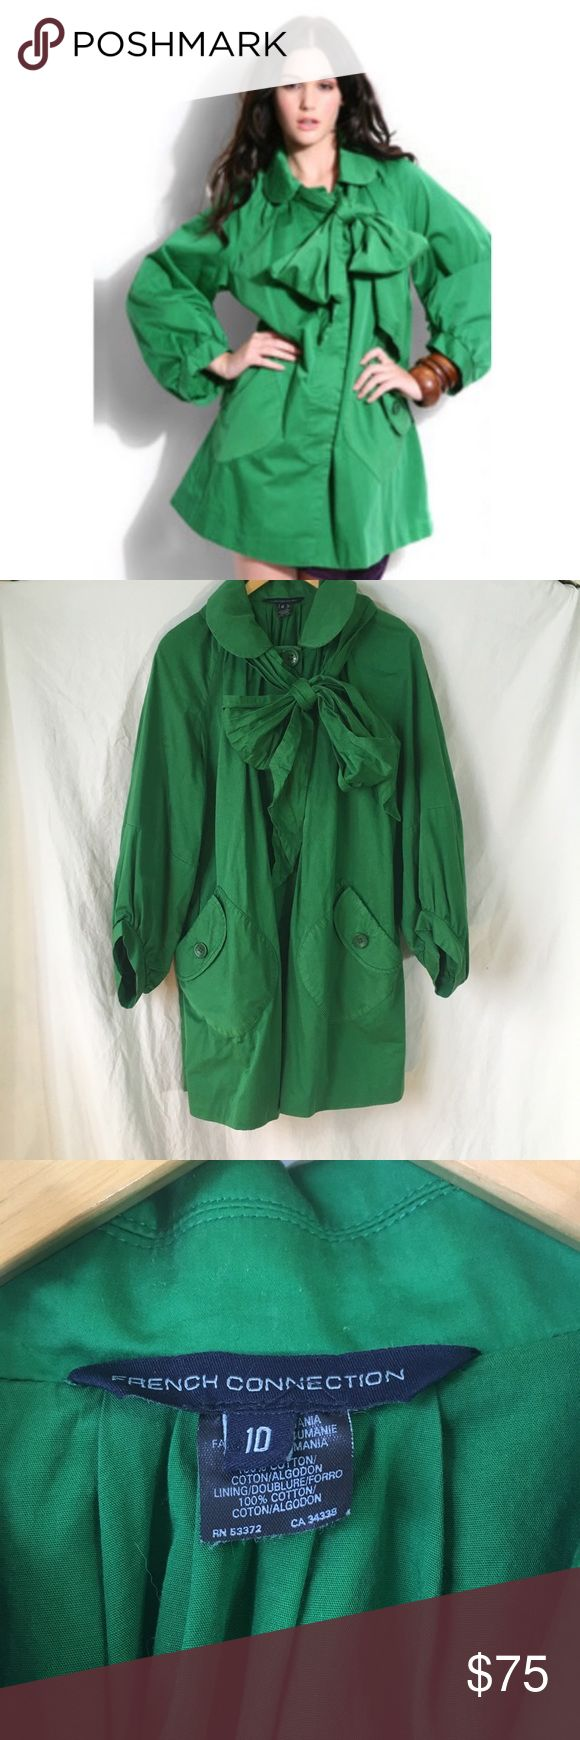 """French Connection lawn green jacket with bow Excellent used condition. 3/4 sleeves bust 22"""" length 33"""" sleeves 21"""" French Connection Jackets & Coats"""